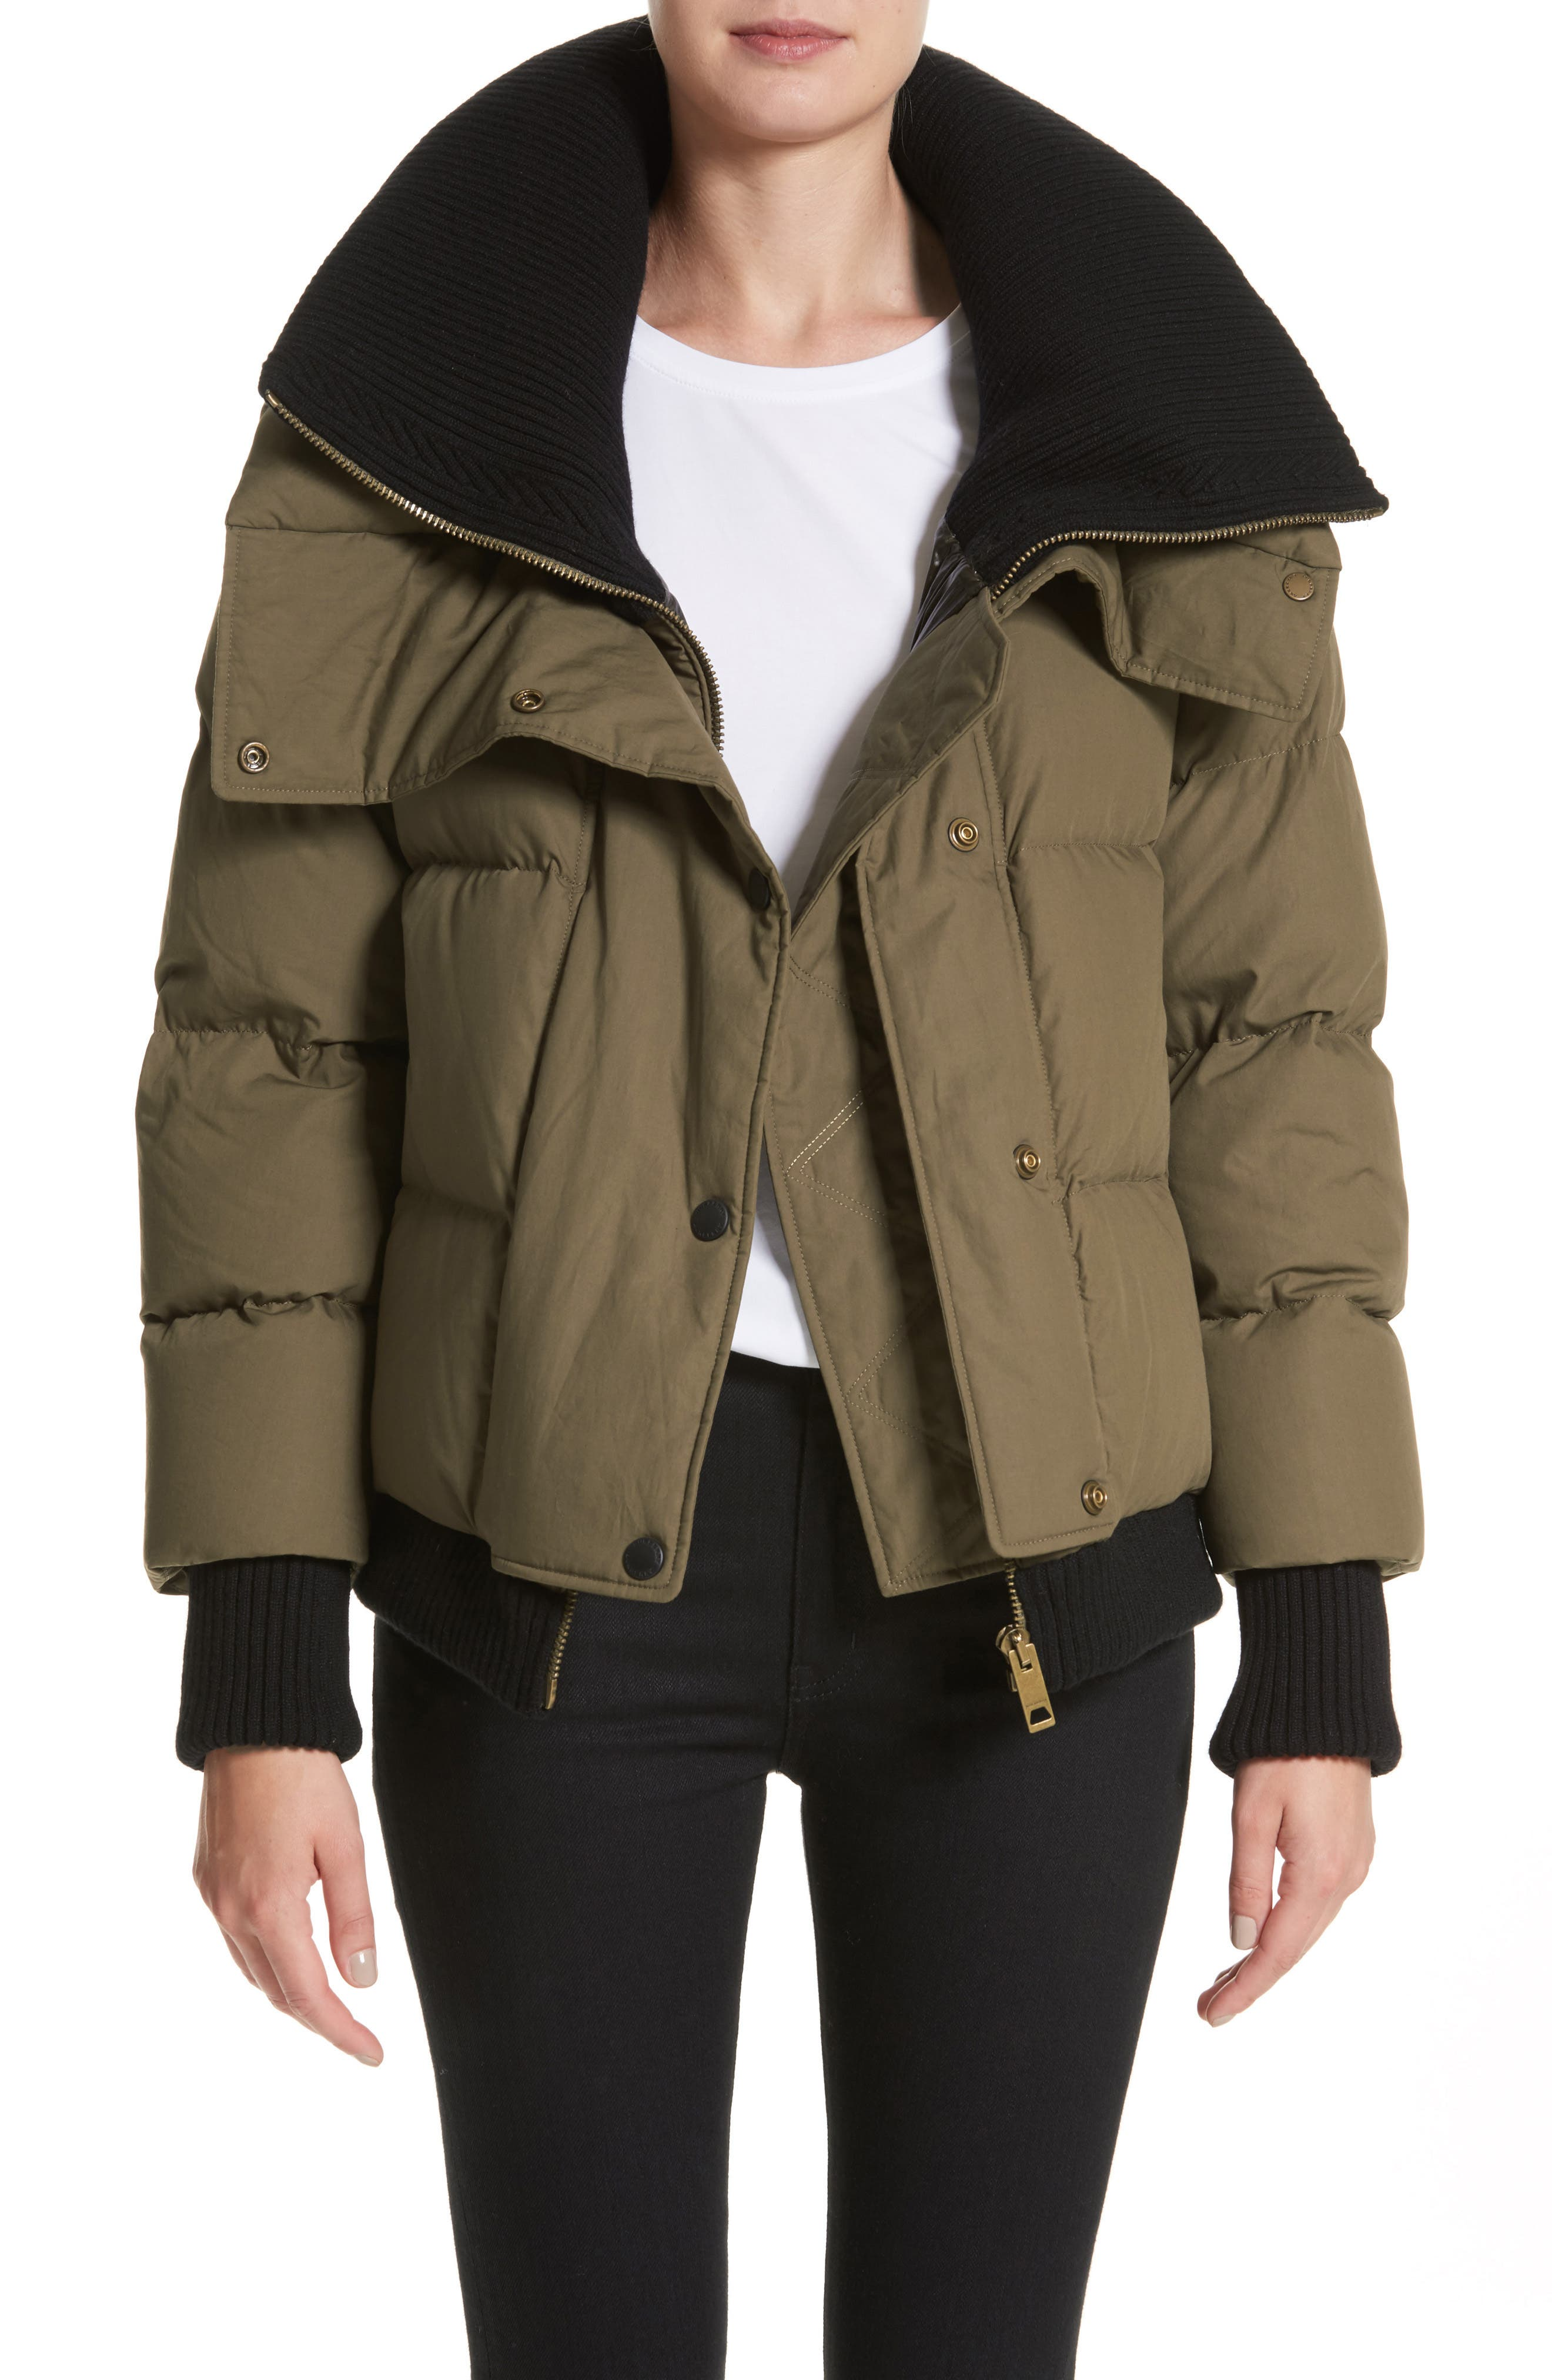 Main Image - Burberry Greenlawkn Puffer Jacket